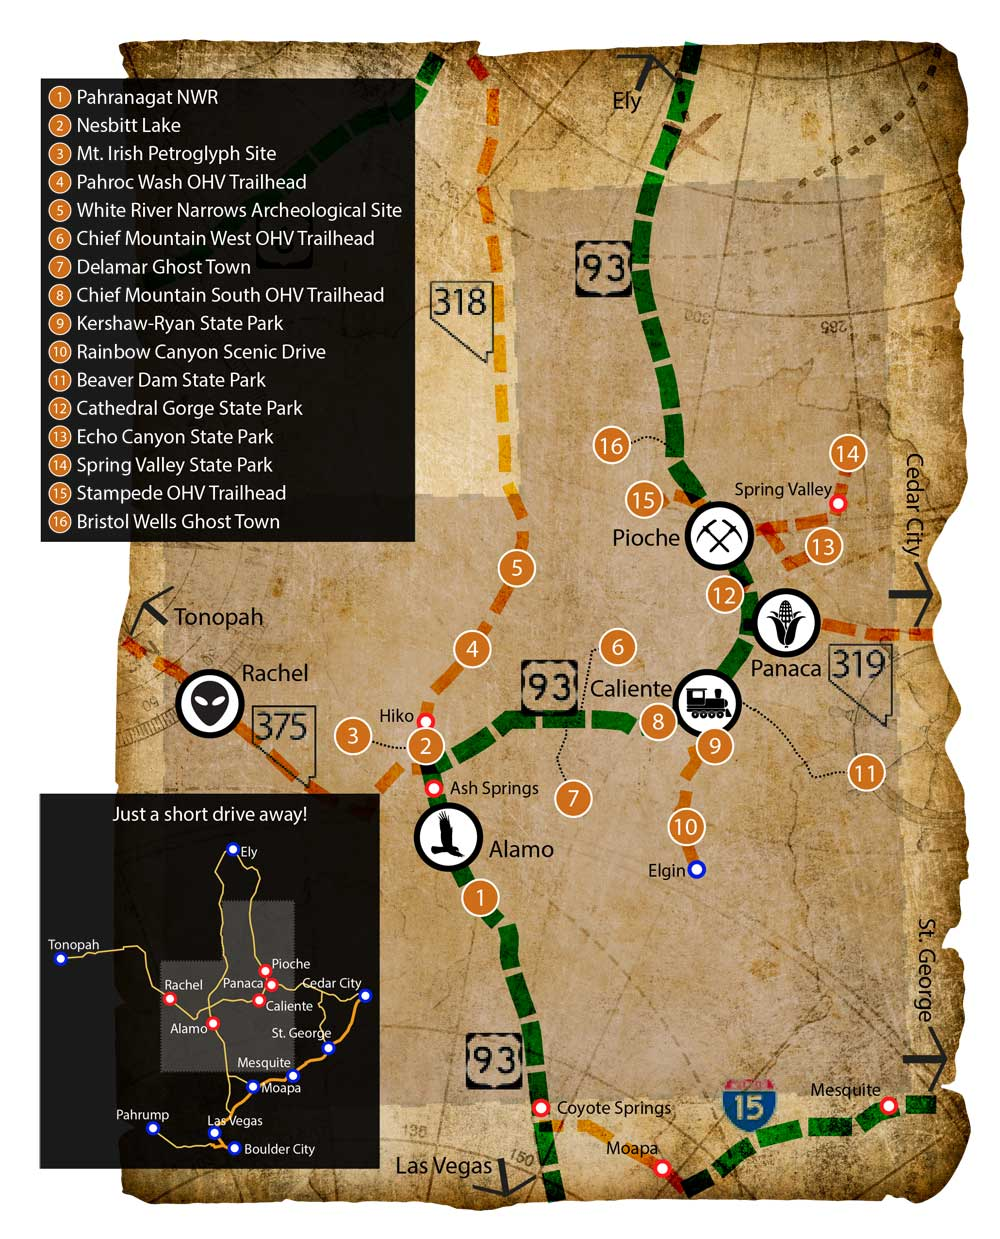 Maps of Lincoln County, Nevada | Destinations Near Las Vegas Alamo Nevada Map on